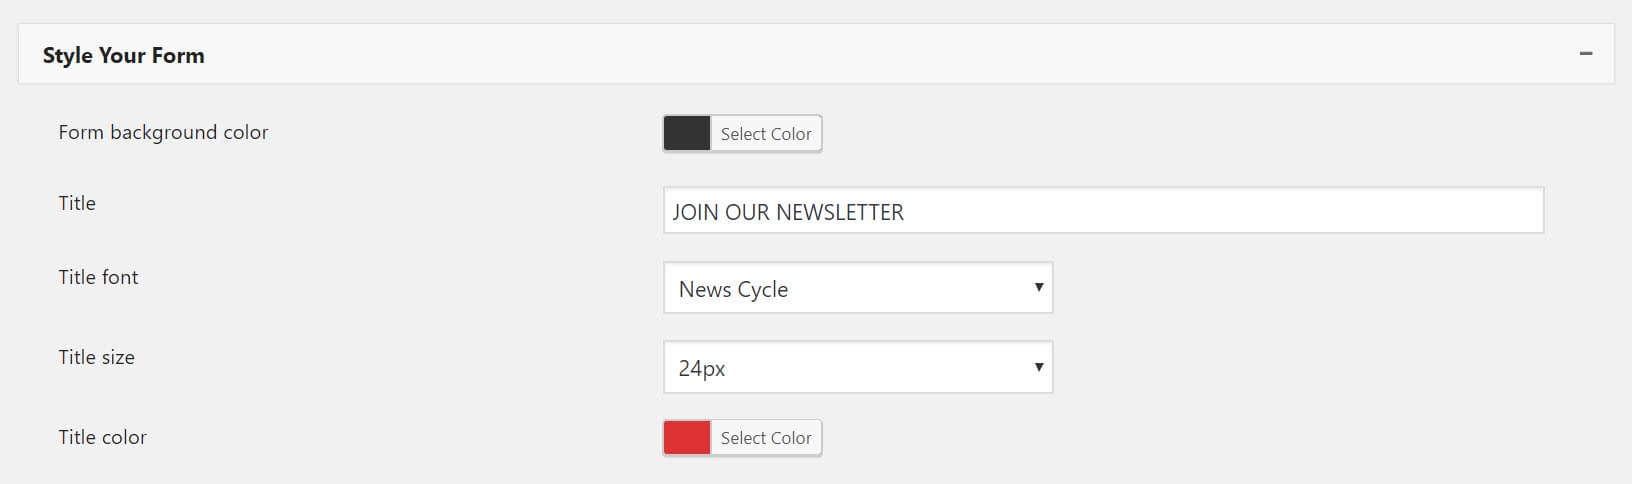 57755f89d These options will enable you to change the appearance of the form. Here  are just a few of the customization opportunities that this plugin provides…